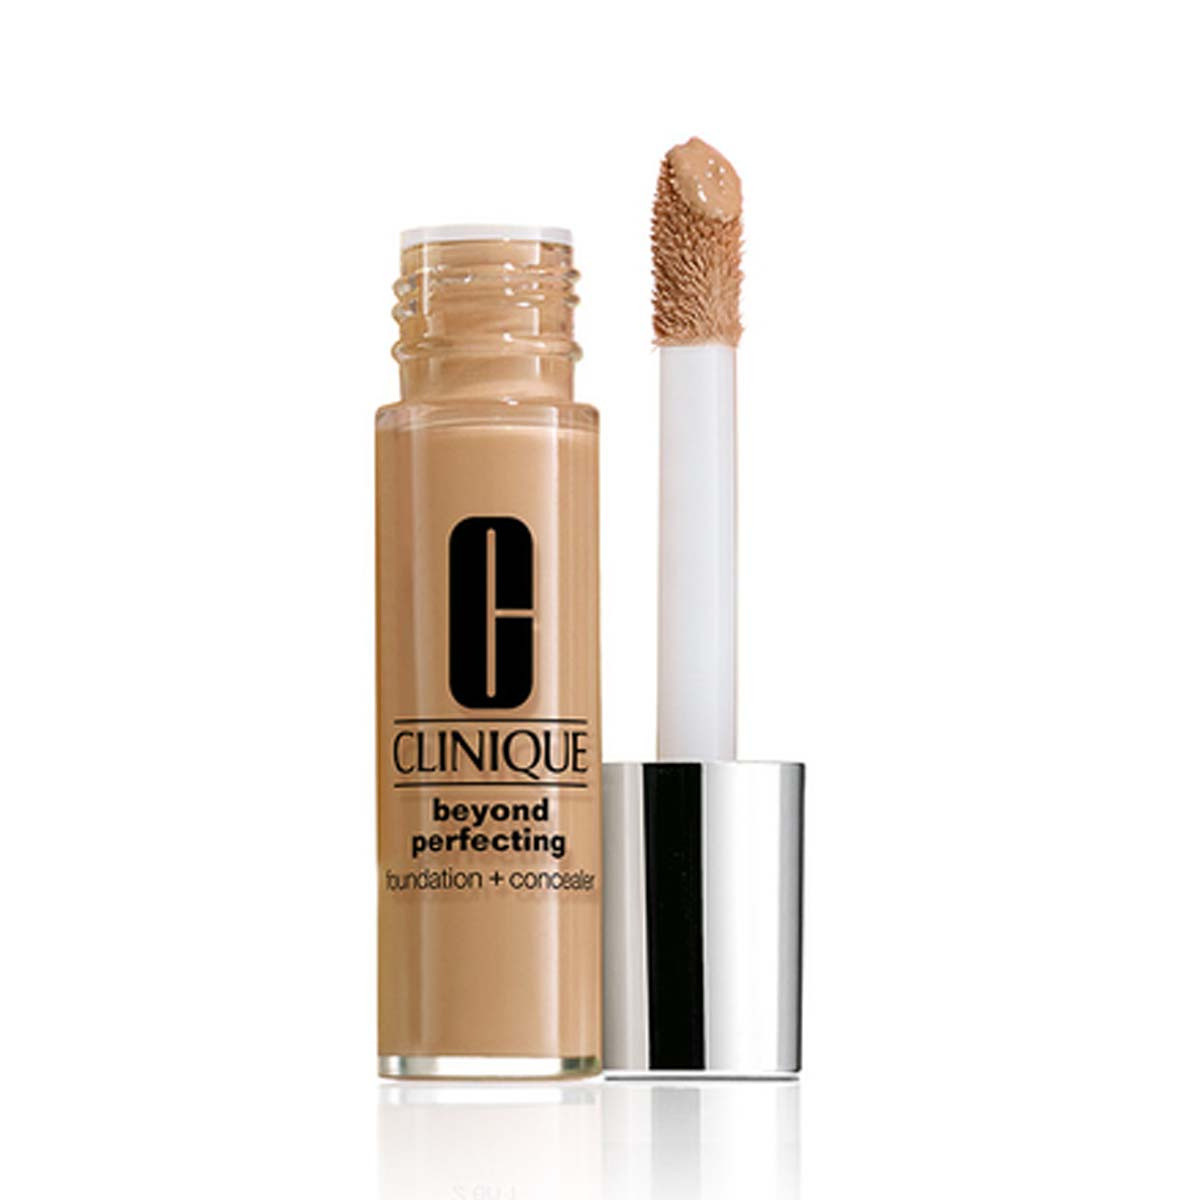 Clinique beyond perfecting foundation, CN 28 IVORY, large image number 0